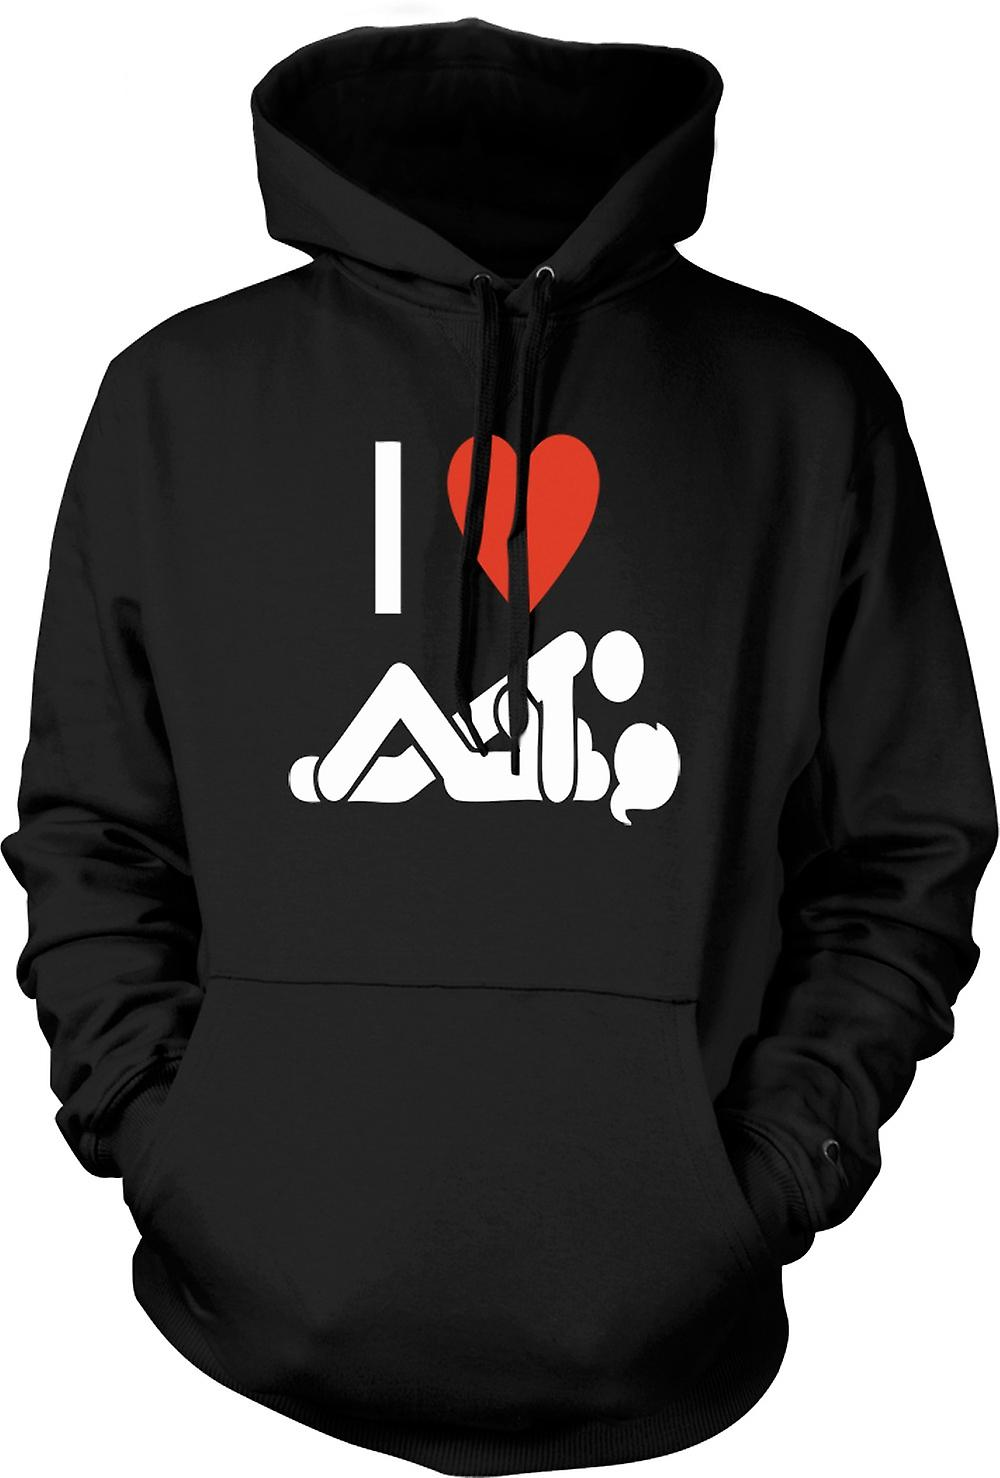 Mens Hoodie - I love Heart Sex - Funny